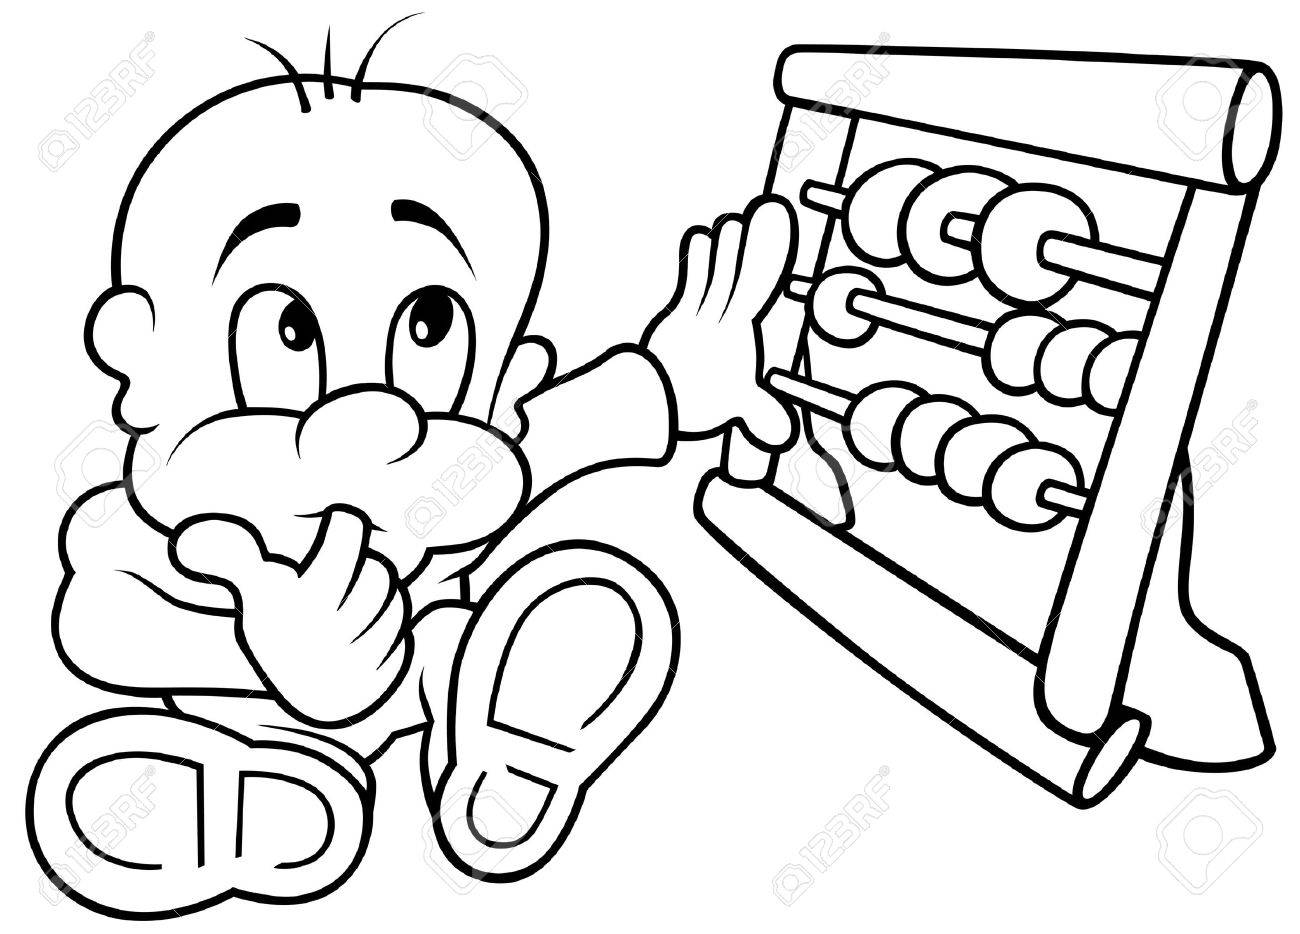 Baby and Abacus - Black and White Cartoon illustration, Vector Stock Vector - 8663628